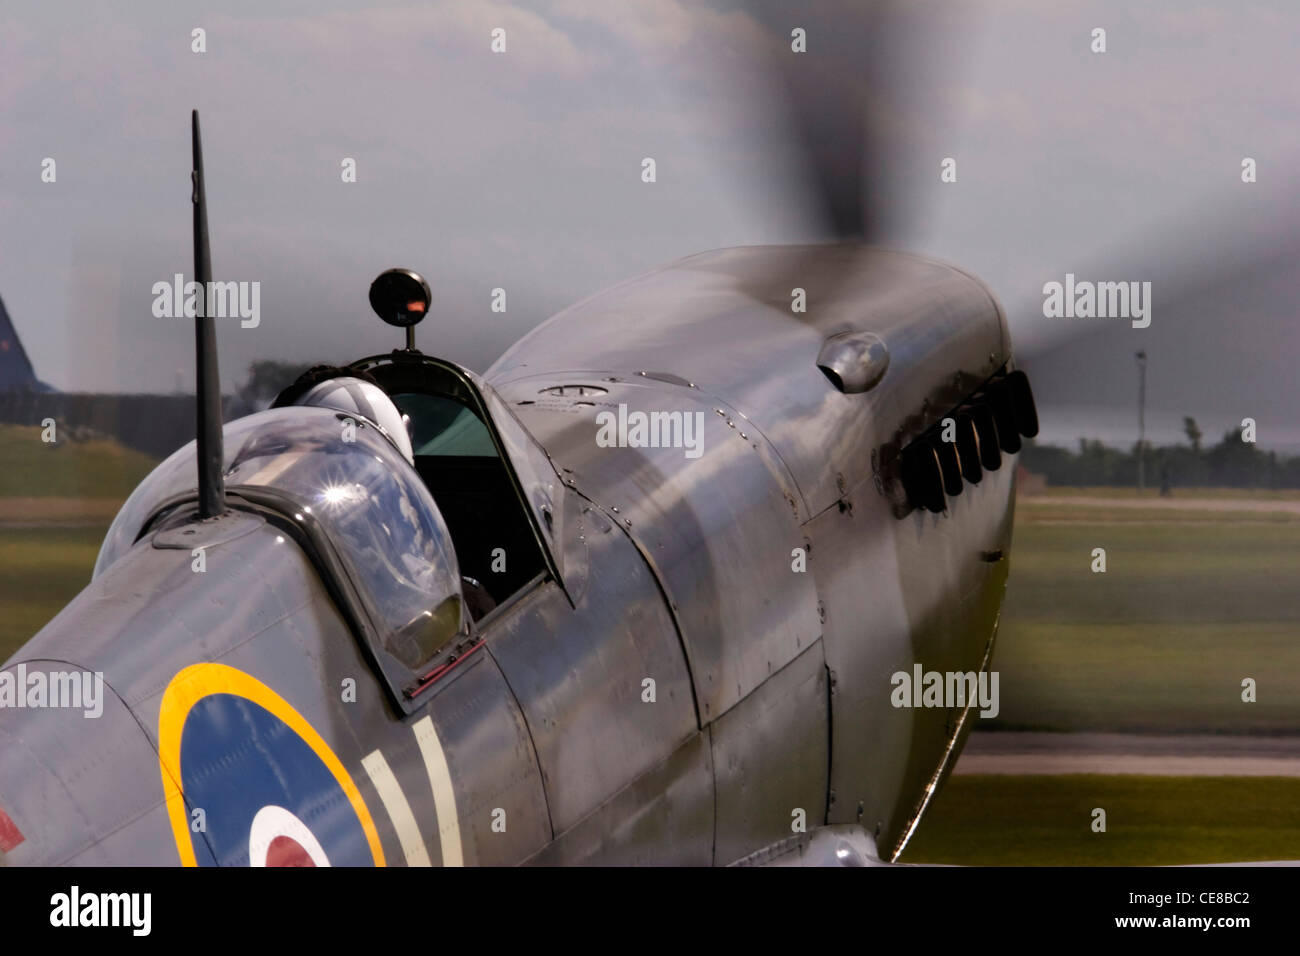 BBMF Spitfire at RAF Waddington Airshow 2005. 80th anniversary in 2016 - Stock Image